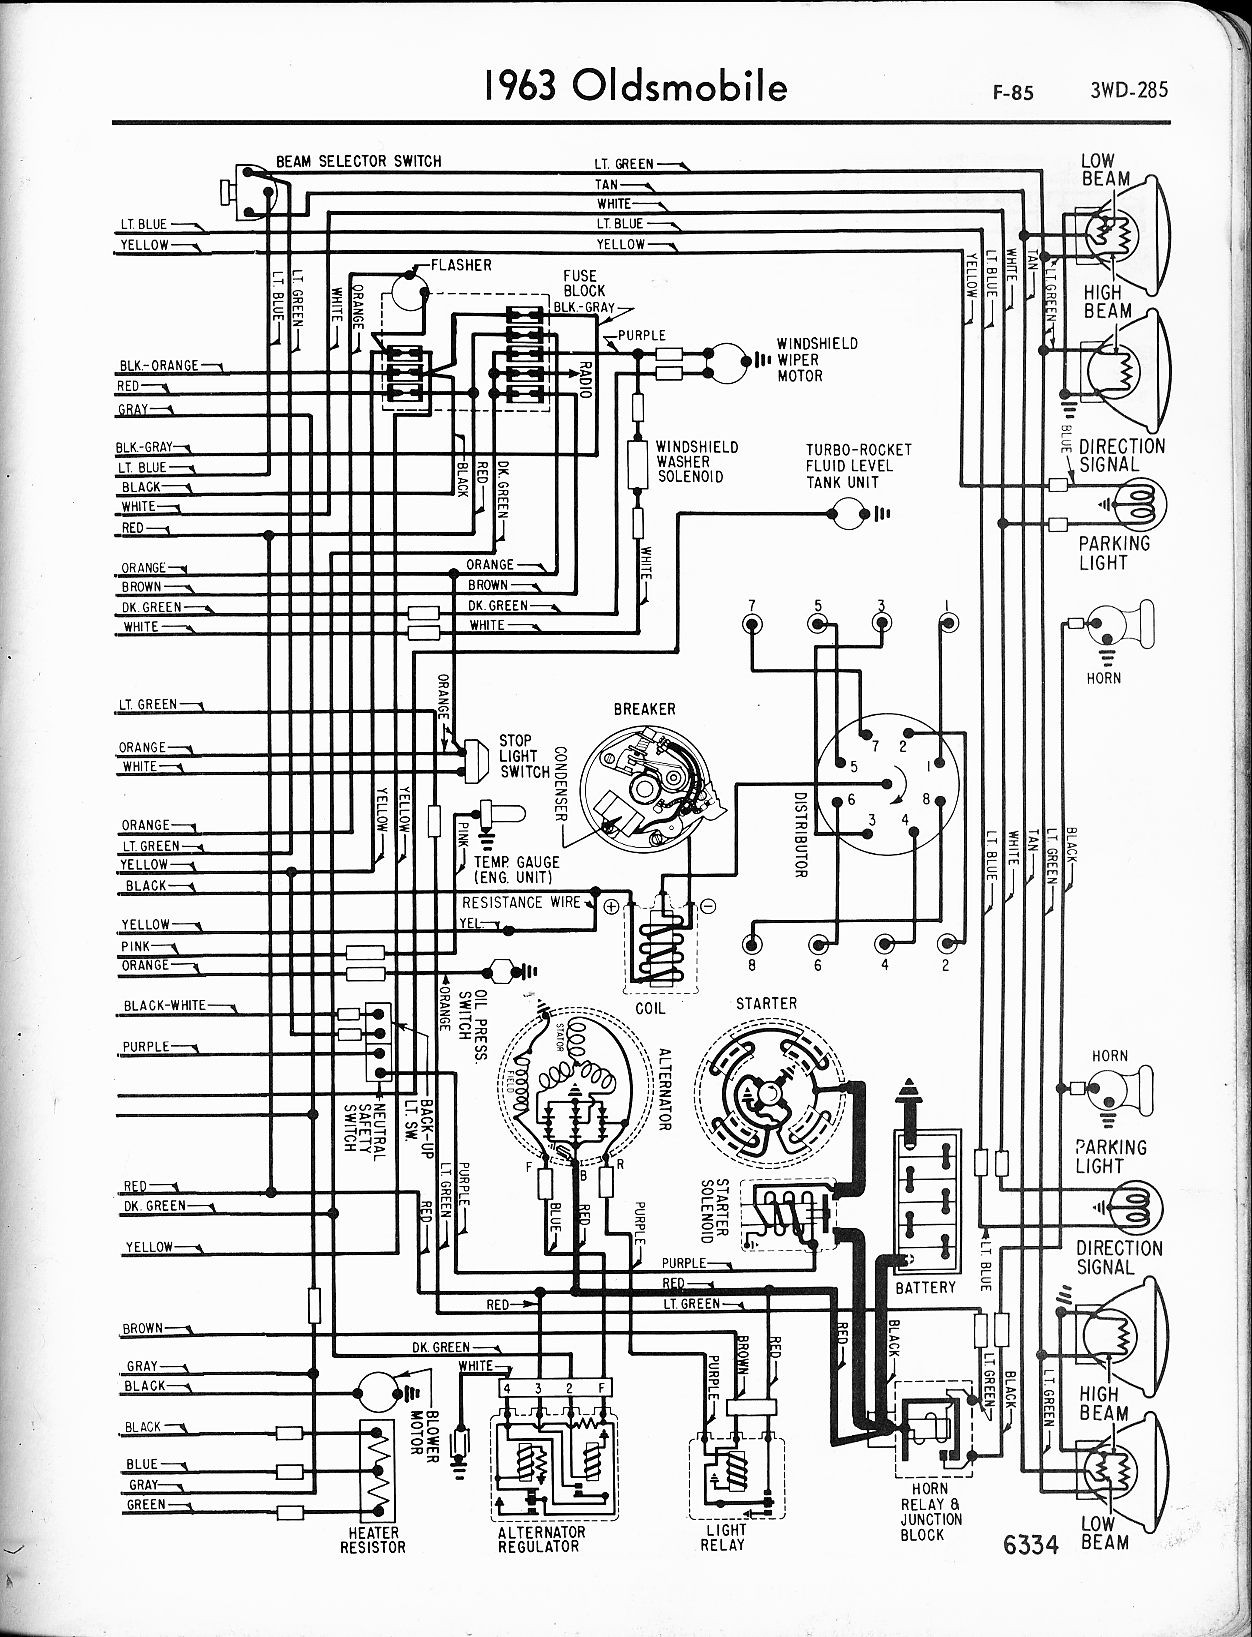 1977 oldsmobile cutlass fuse box diagram